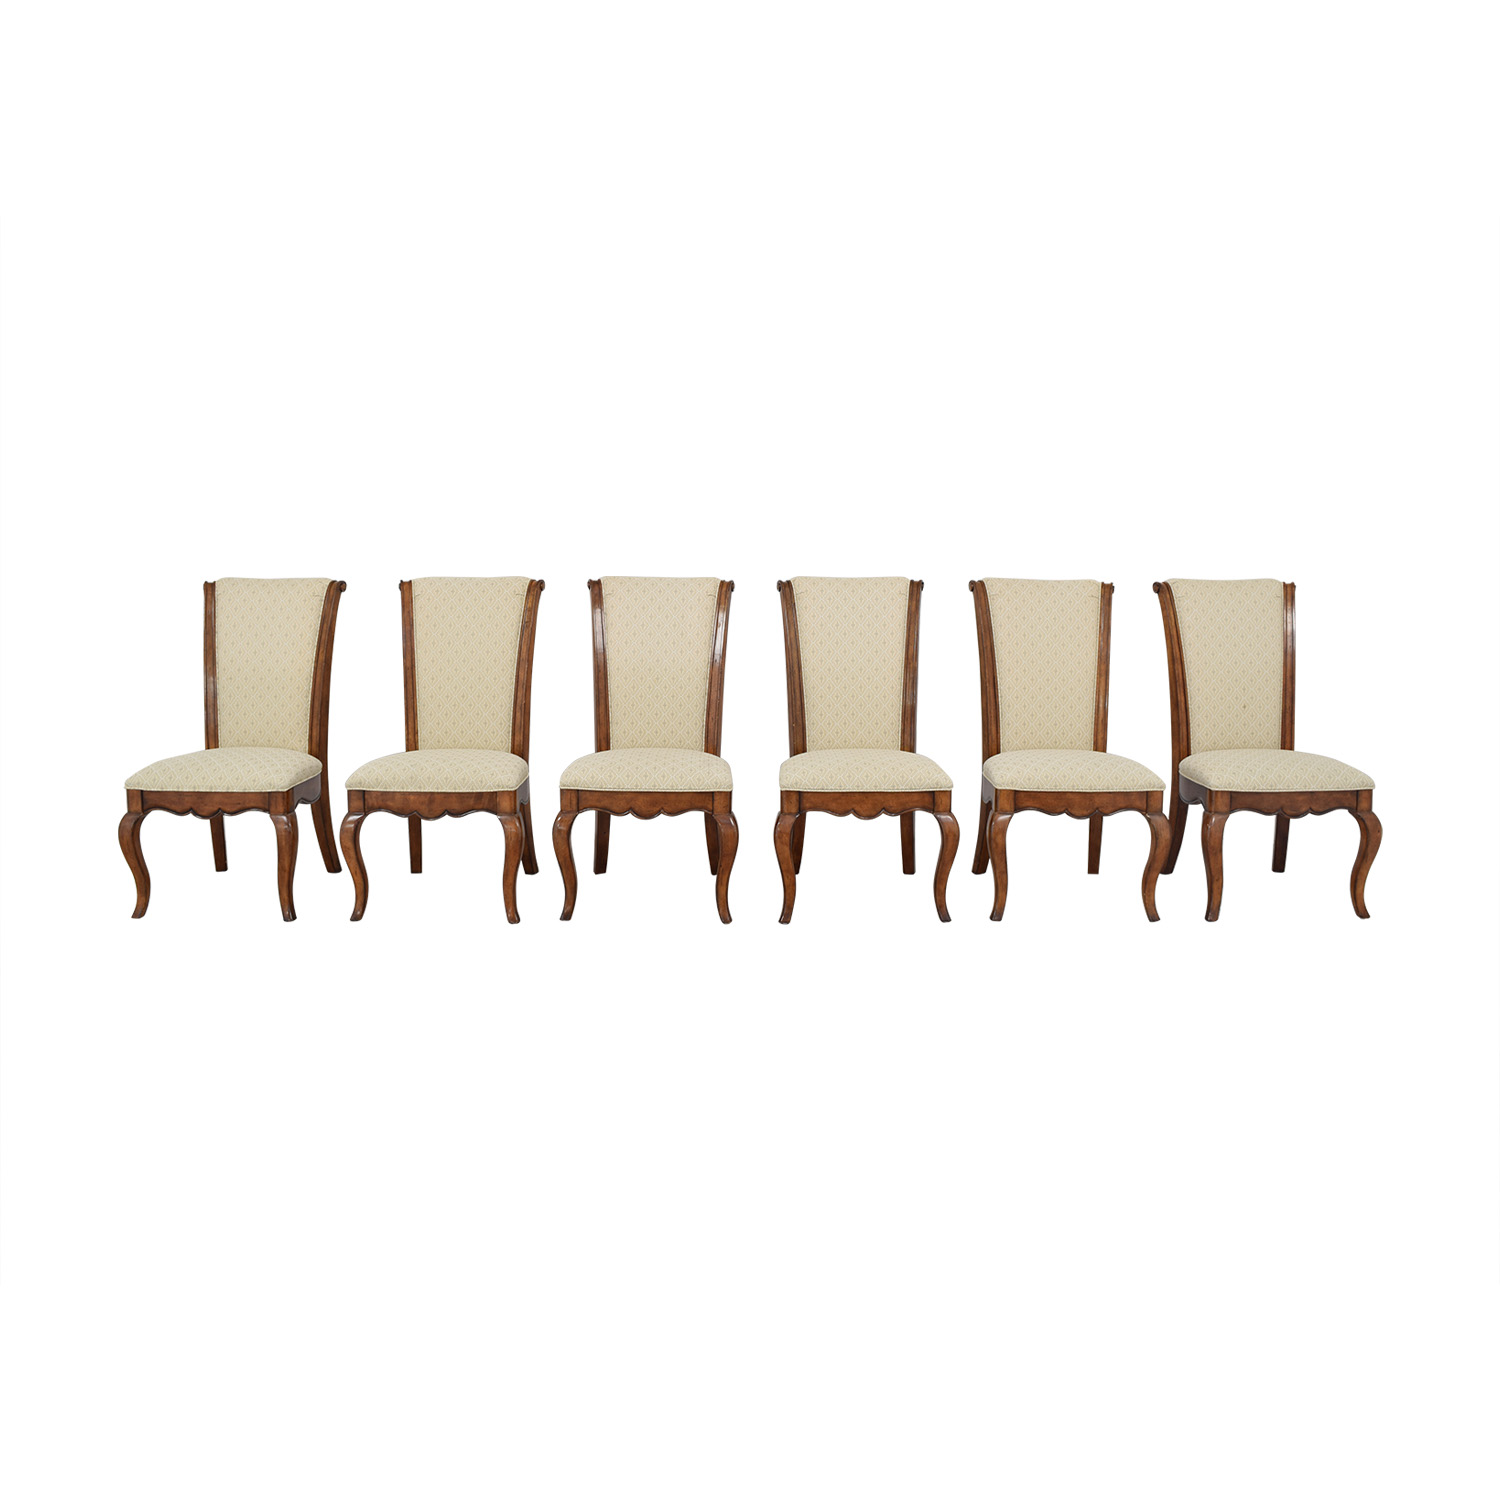 Drexel Heritage Drexel Heritage Extendable Dining Chairs dimensions